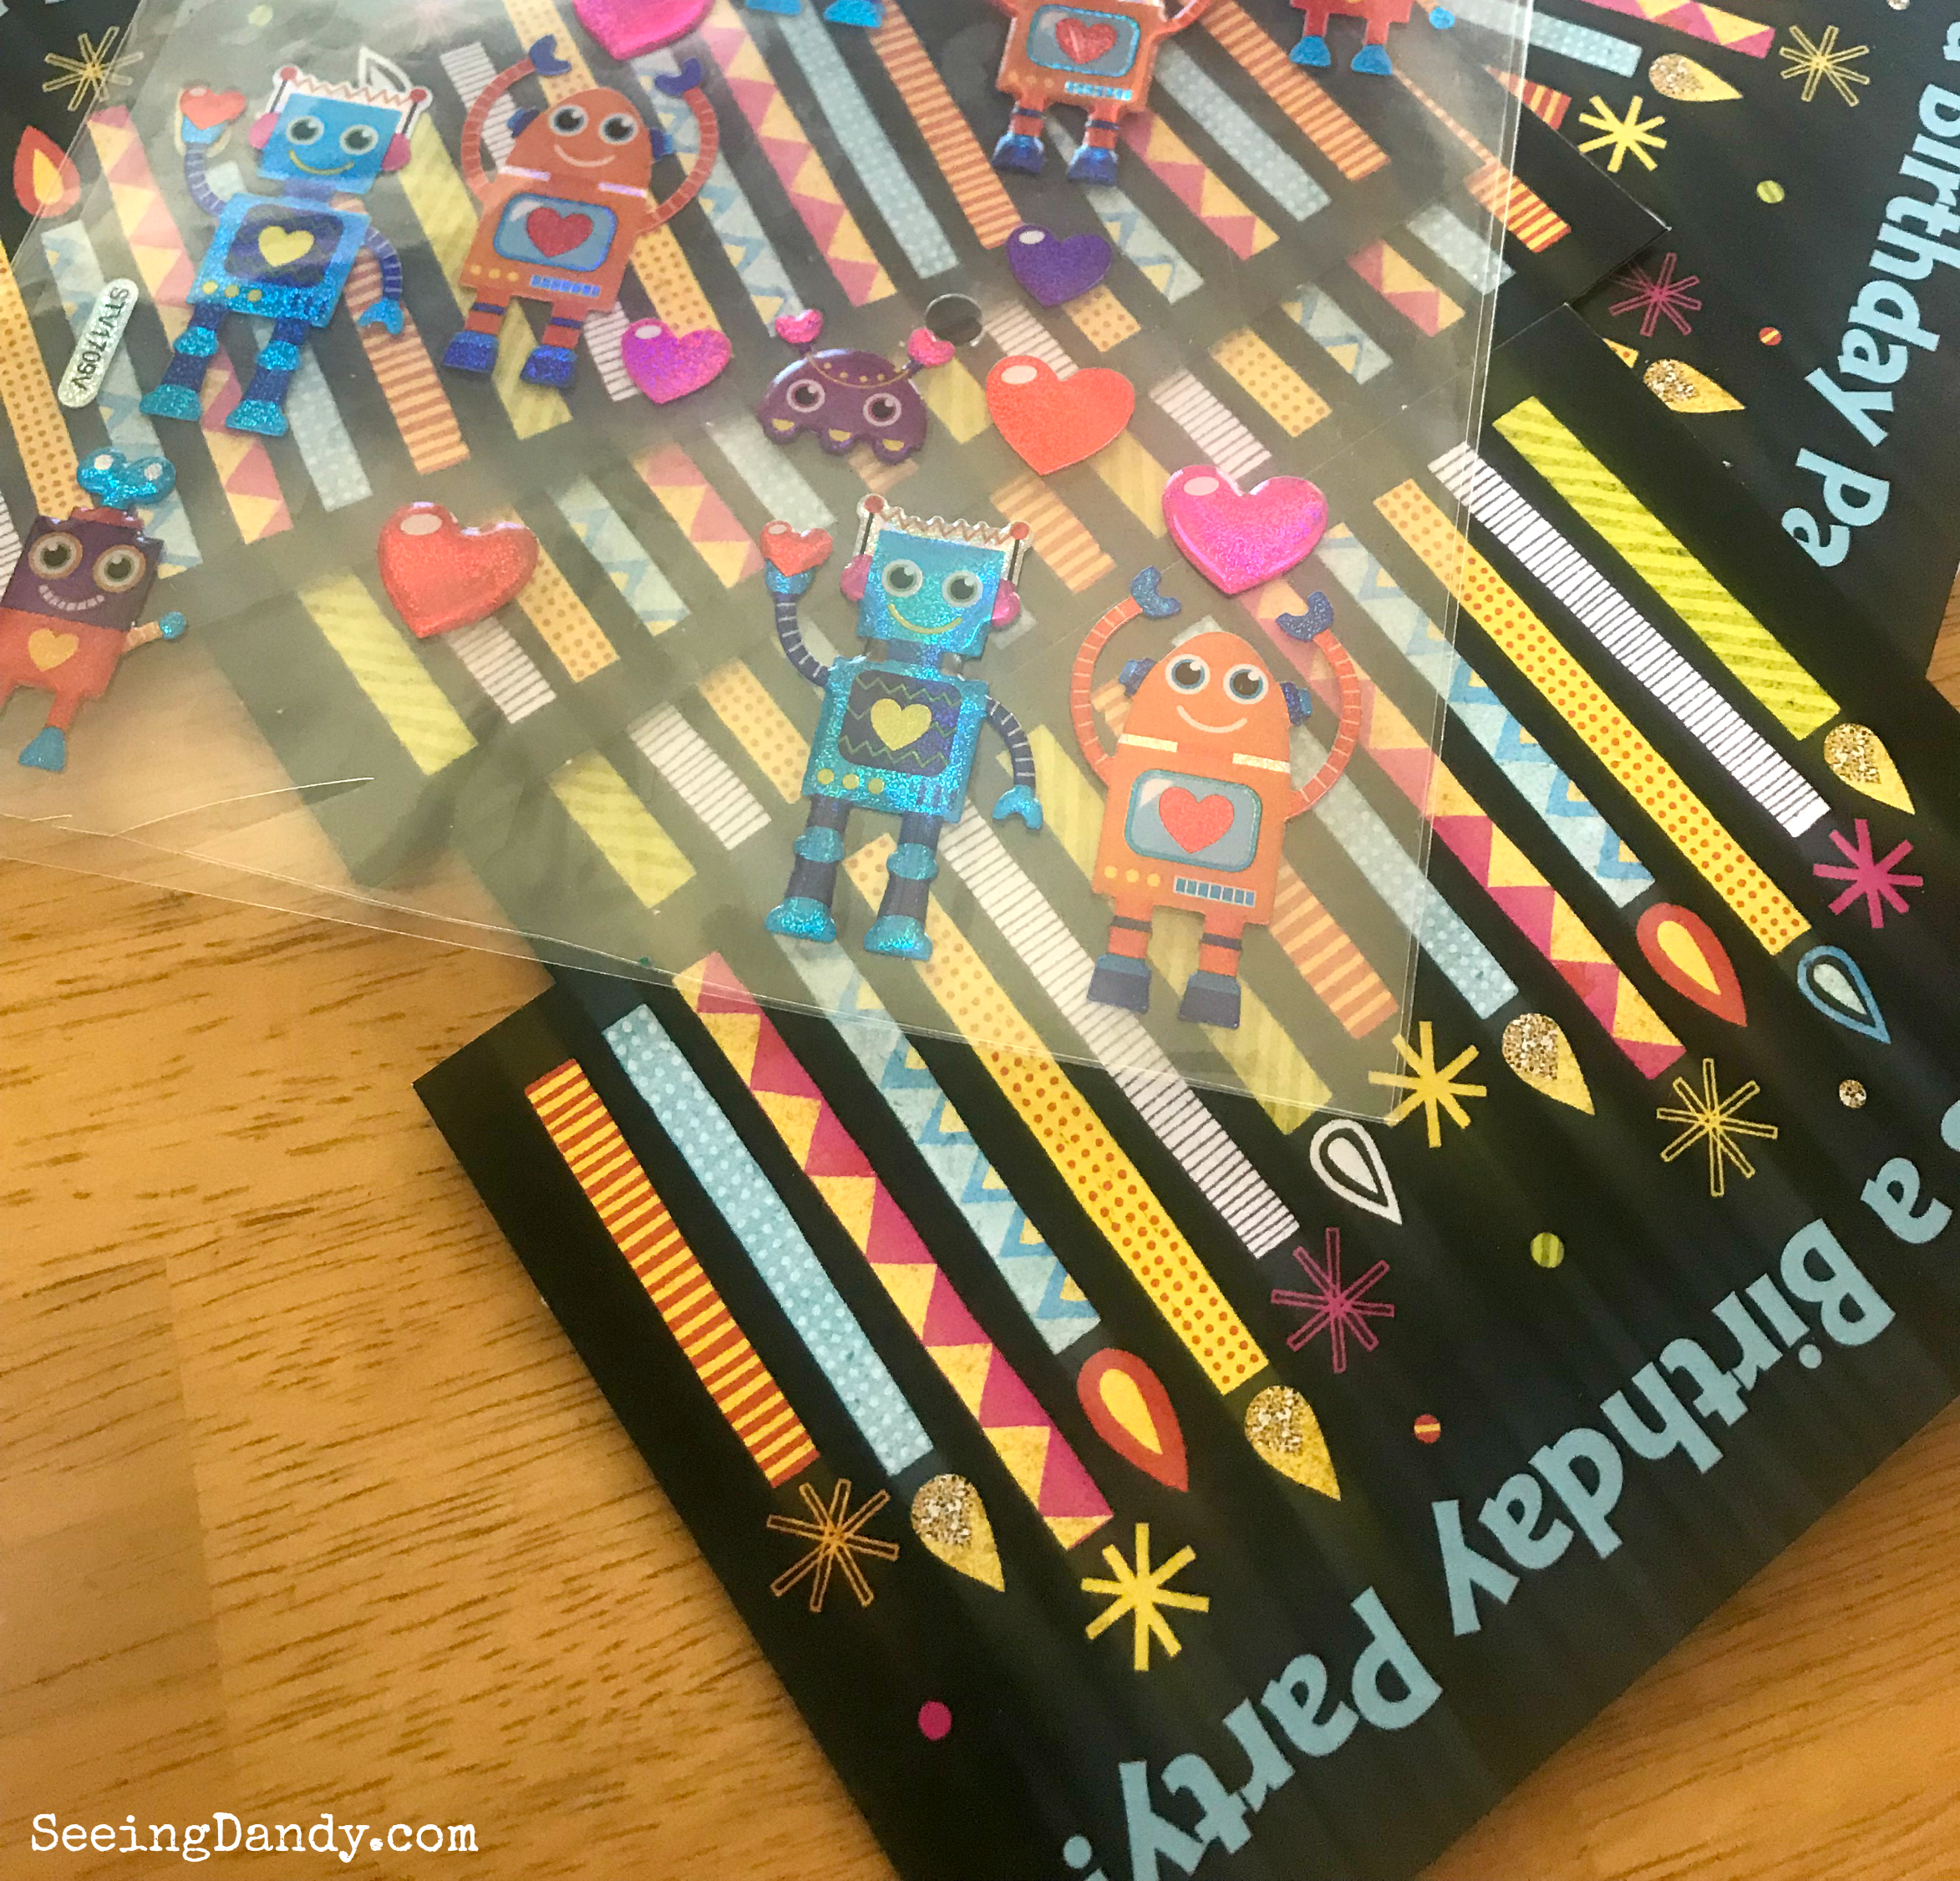 Robot birthday card invitations with robot Valentine stickers.